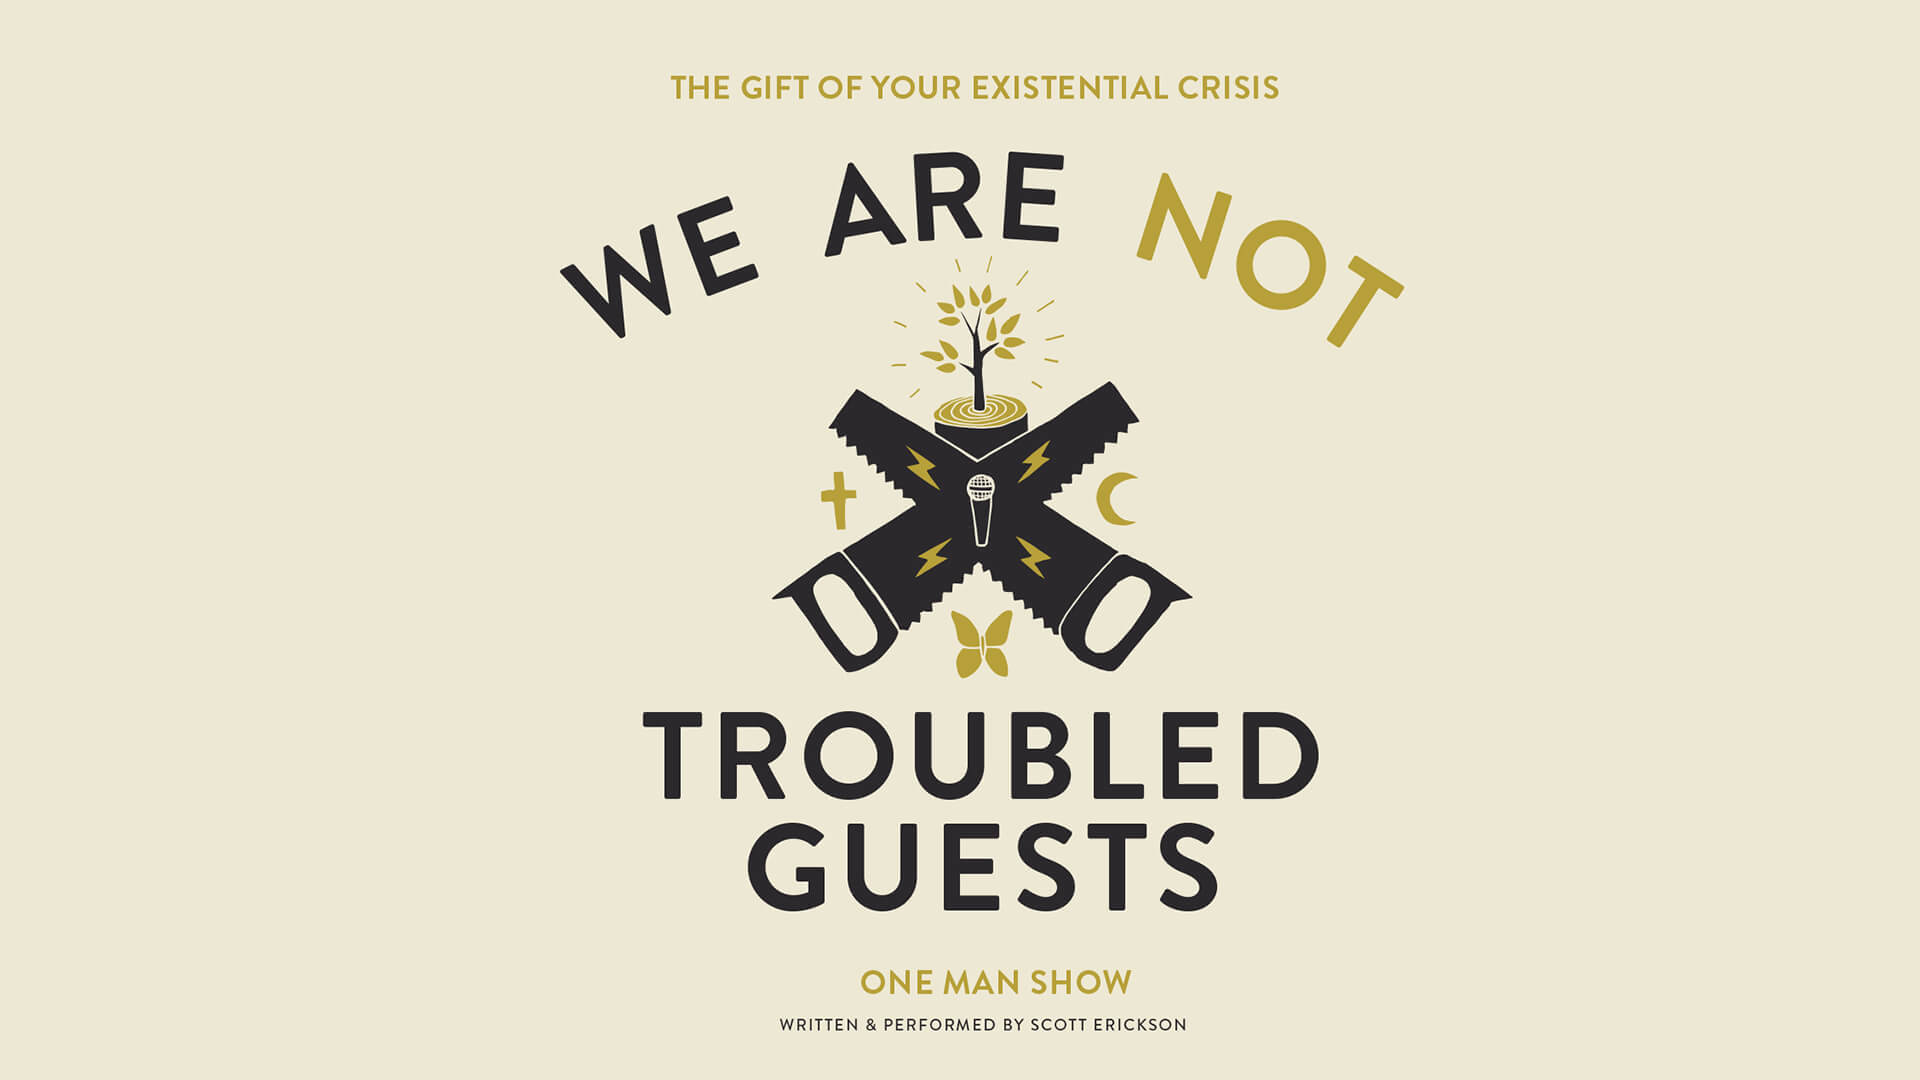 We Are Not Troubled Guests